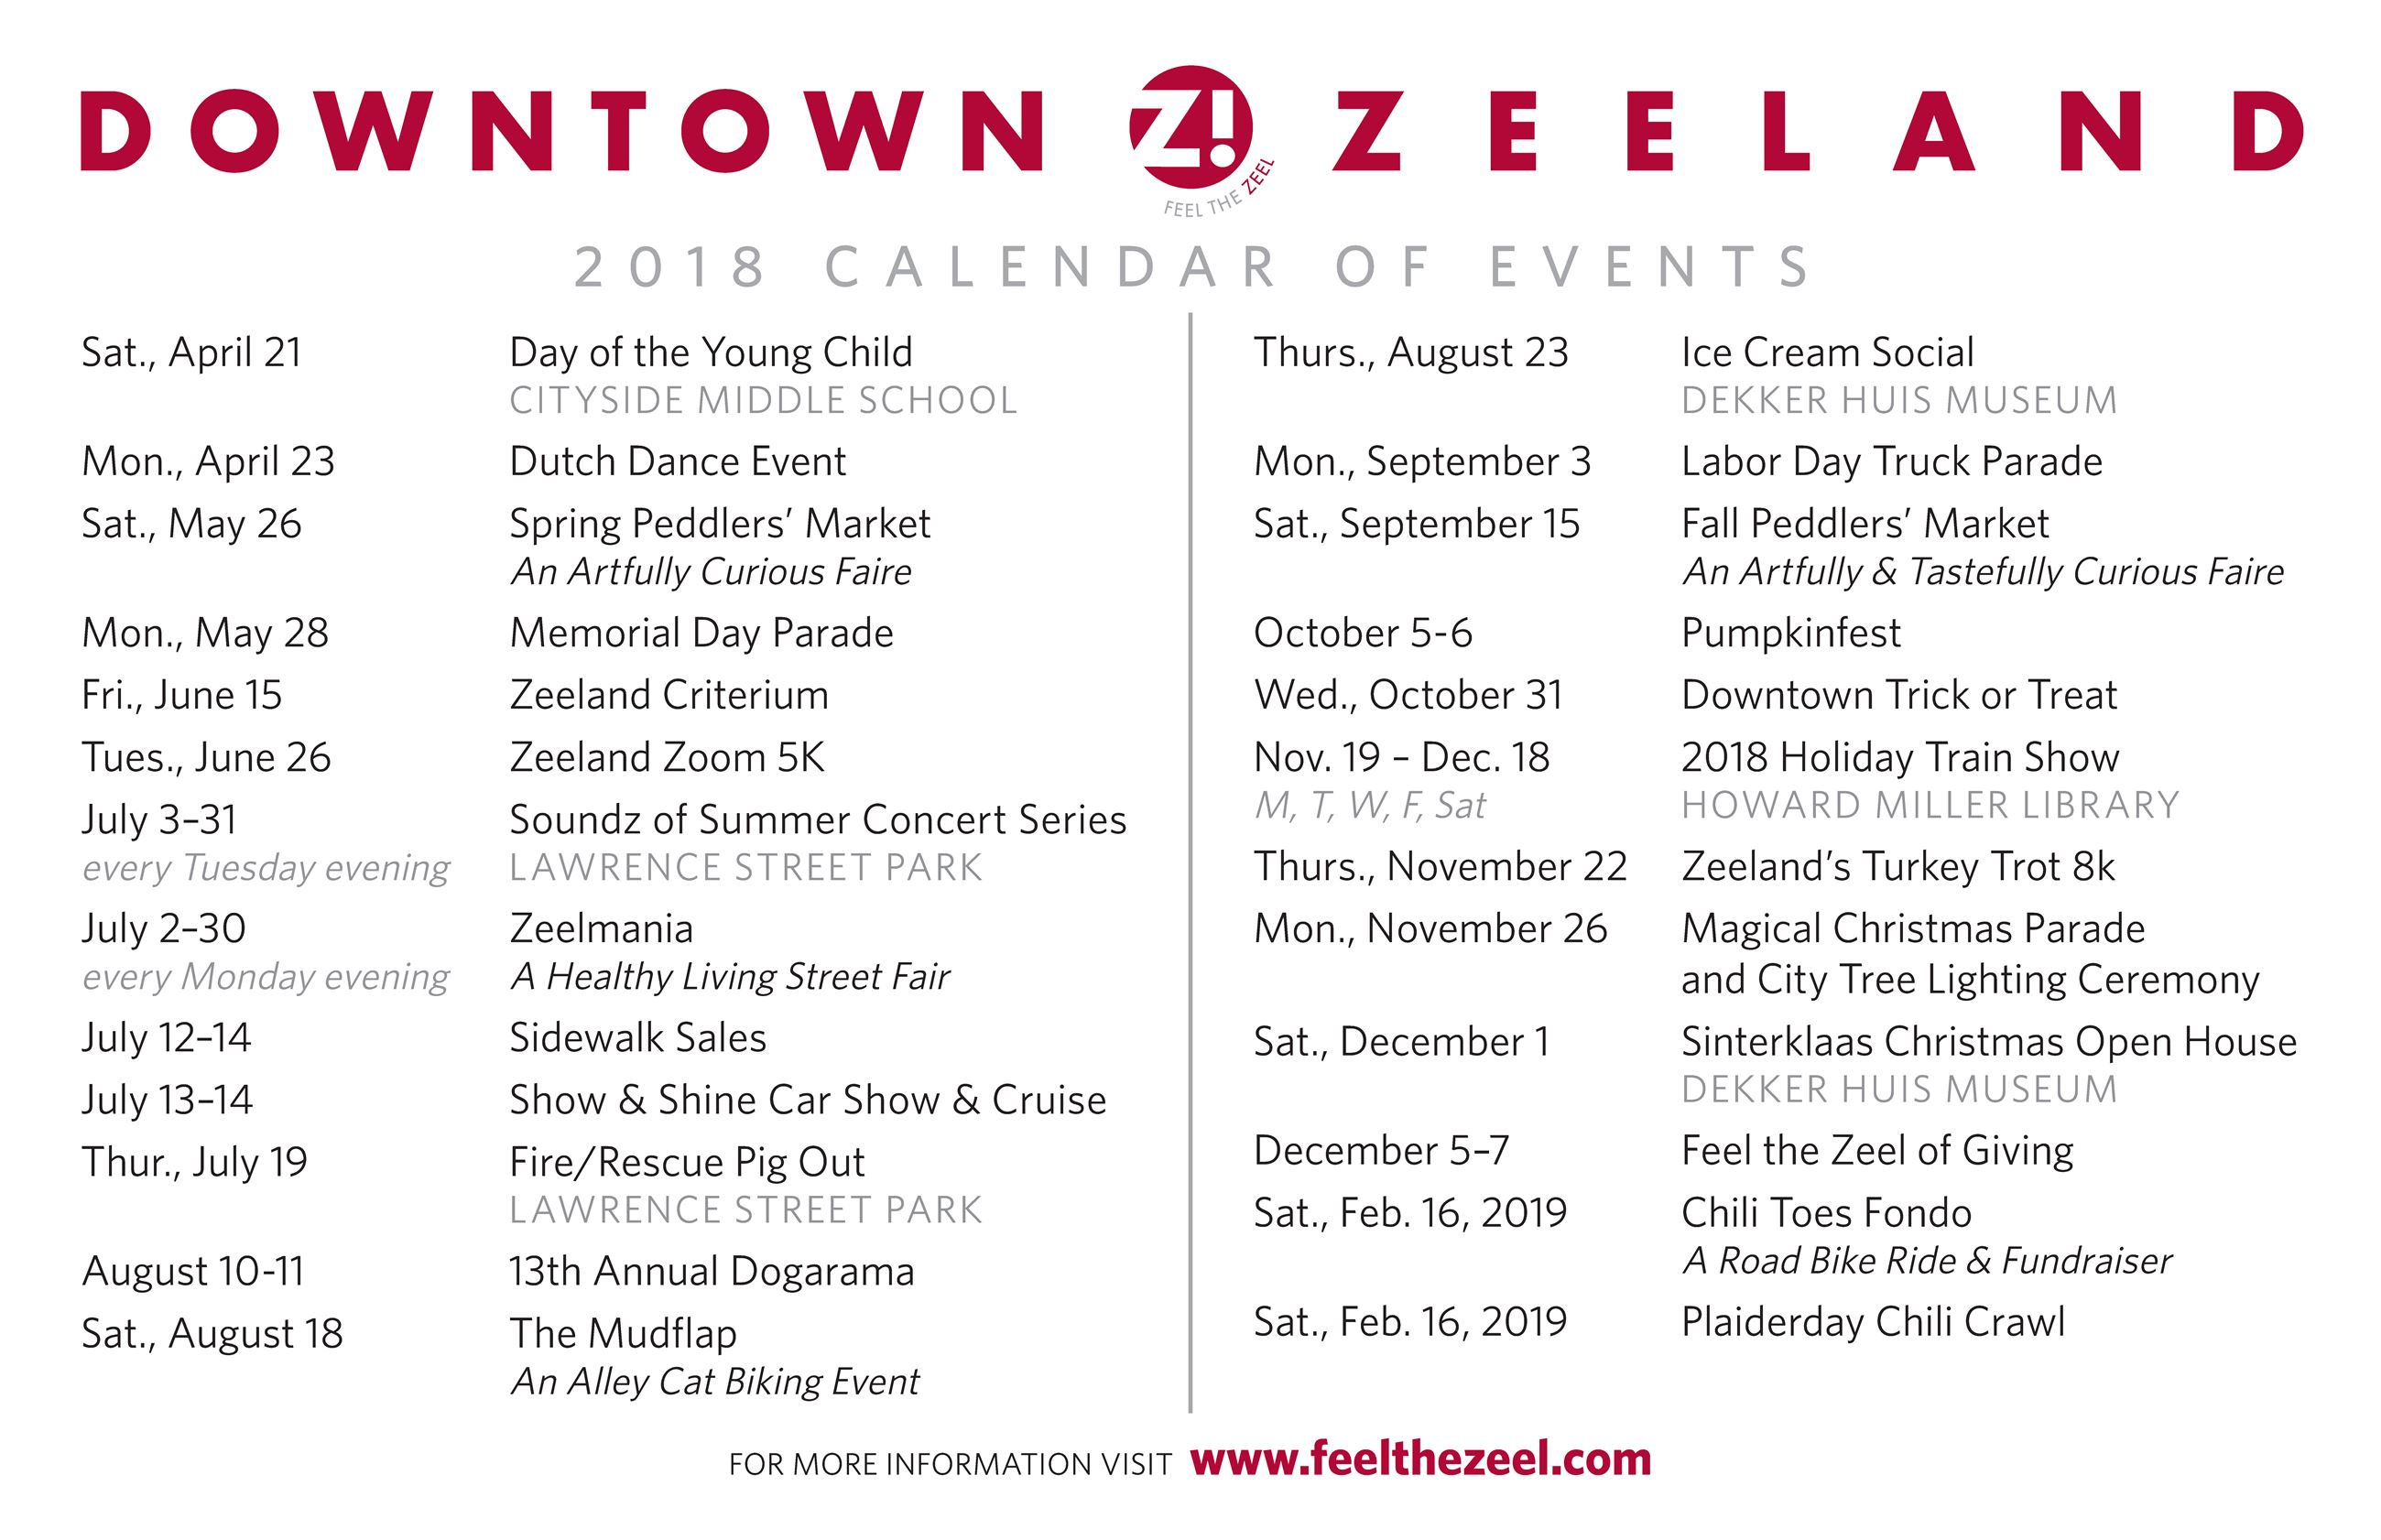 downtown zeeland calendar of events 2018_Page_1 (002)